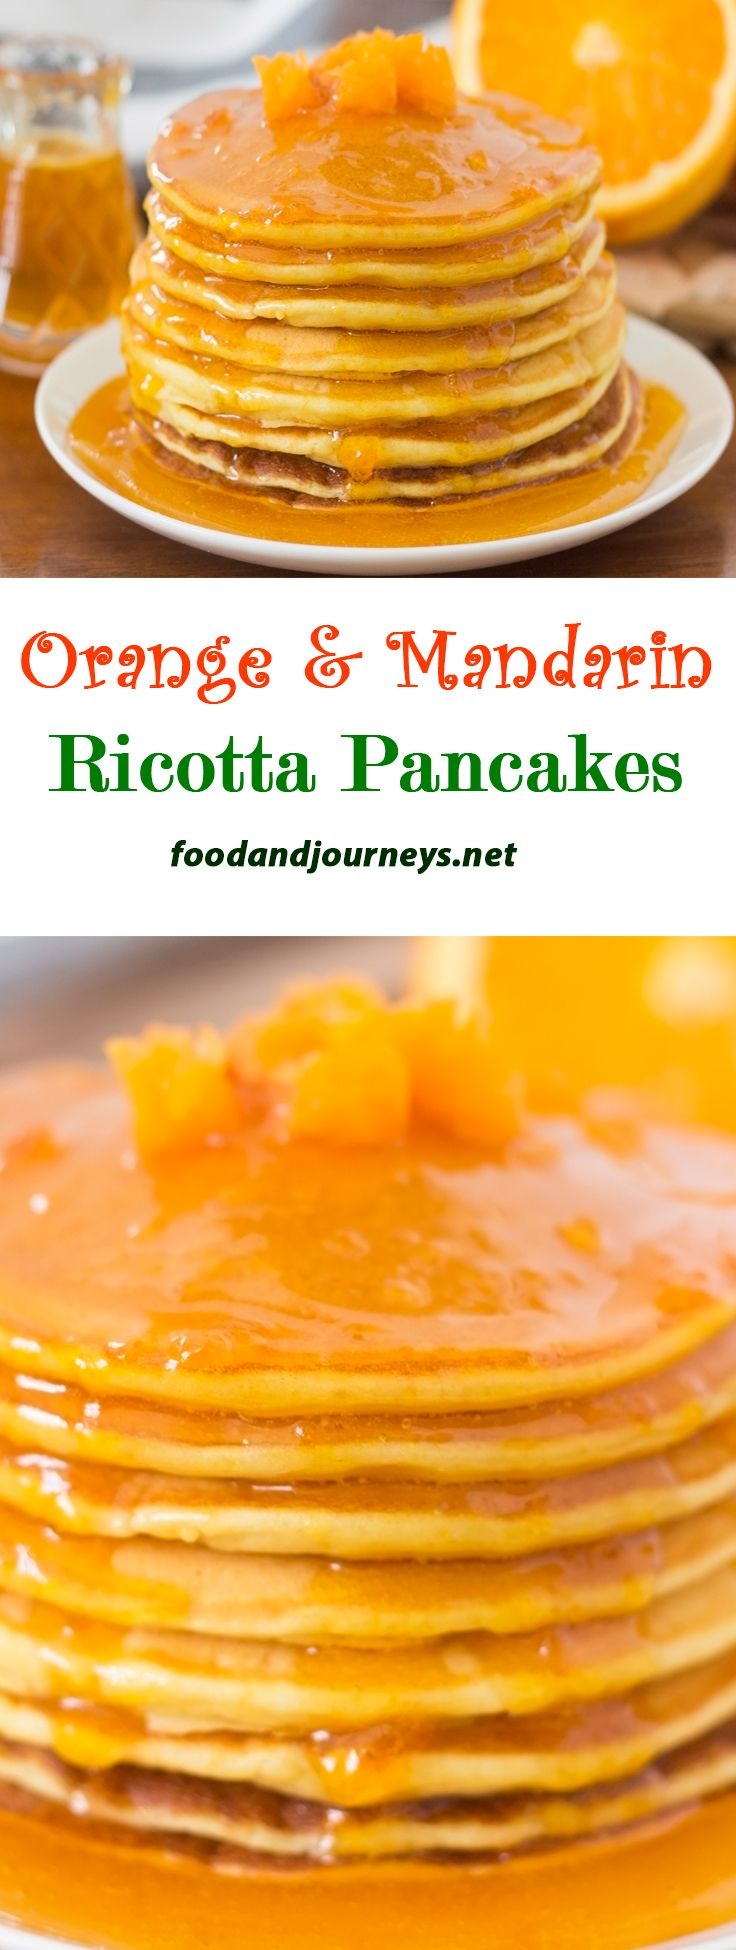 Great for breakfast or snack! A heavenly combo of fluffy, orange ricotta pancakes and sweet, luscious mandarin syrup!